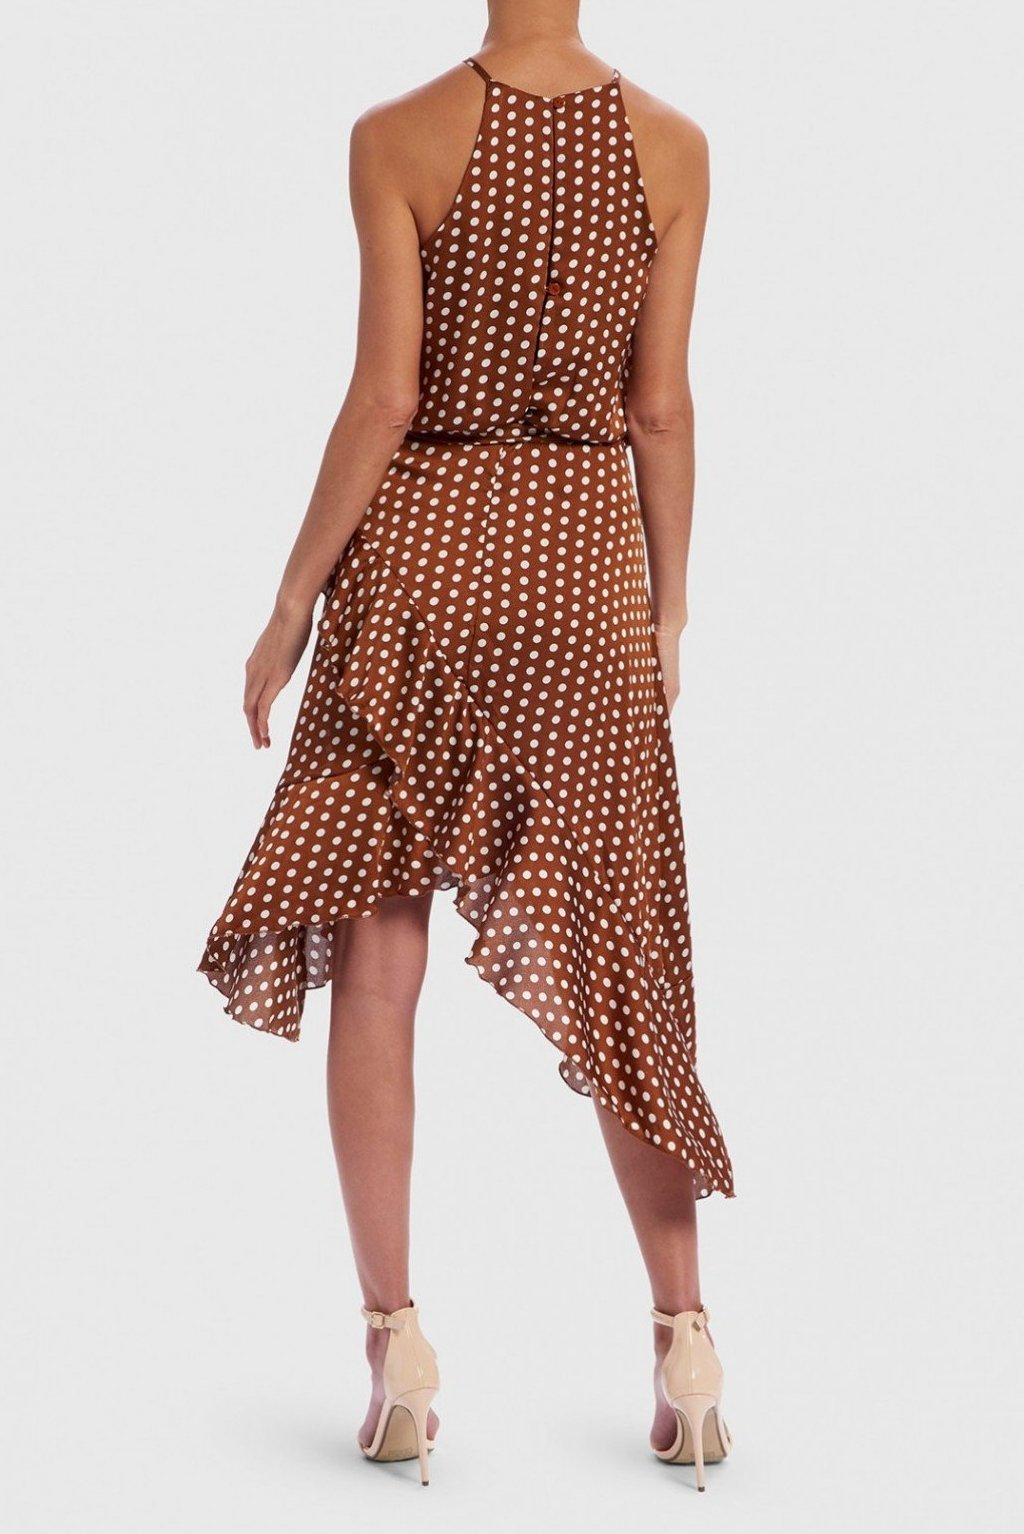 FOREVER UNIQUE U TAN & WHITE POLKA DOT WINNING HALTER NECK DRESS